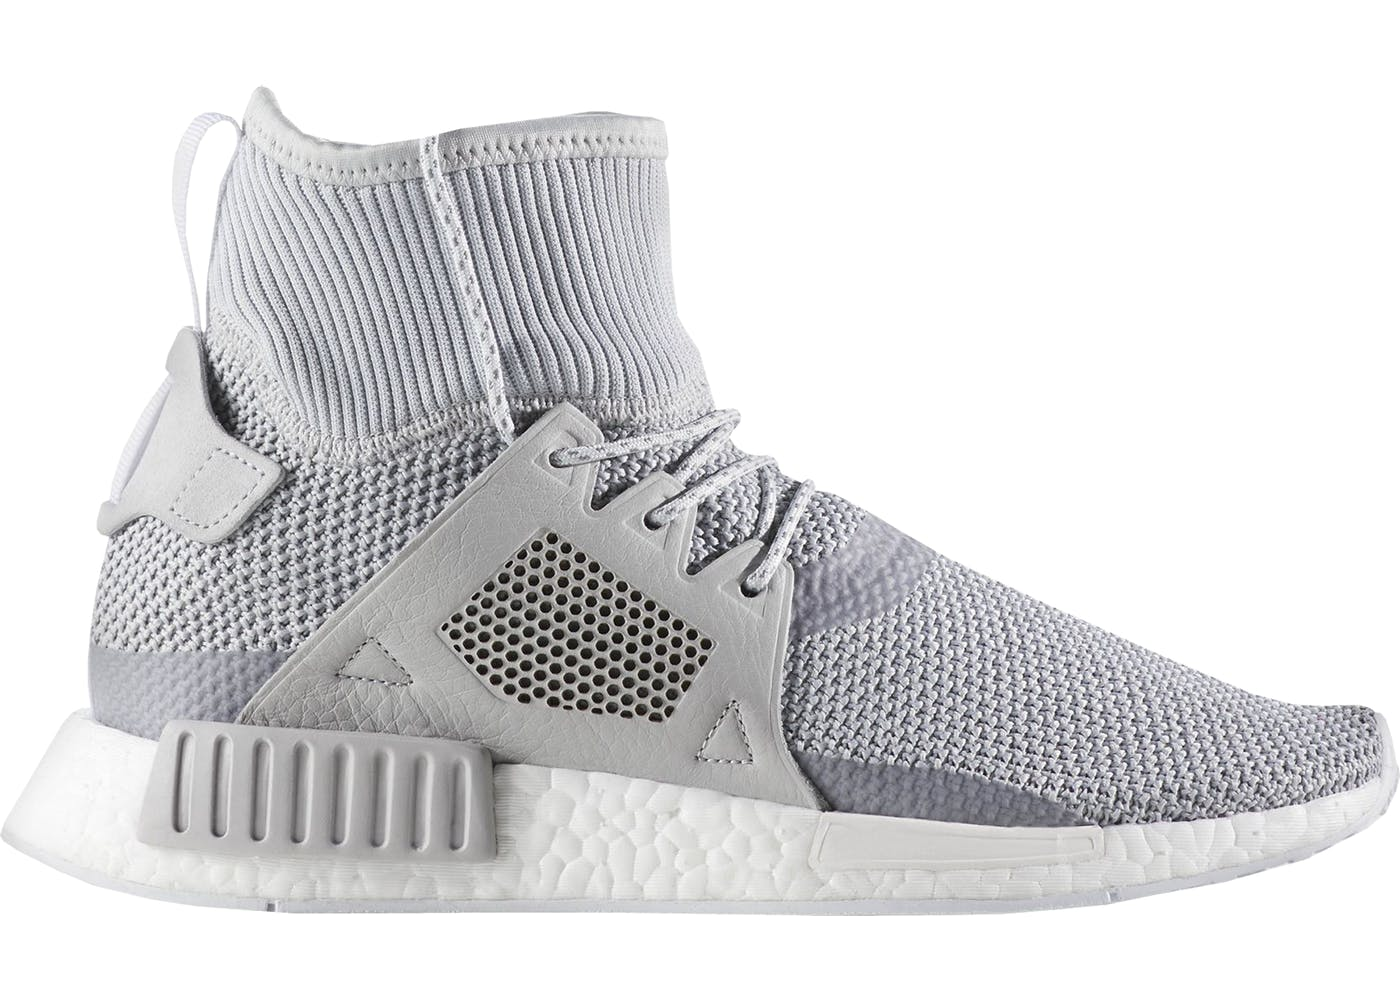 2017 New Arrival Nmd Xr1 Pk Nmd Xr1 Blue Bird Black Friday Boost